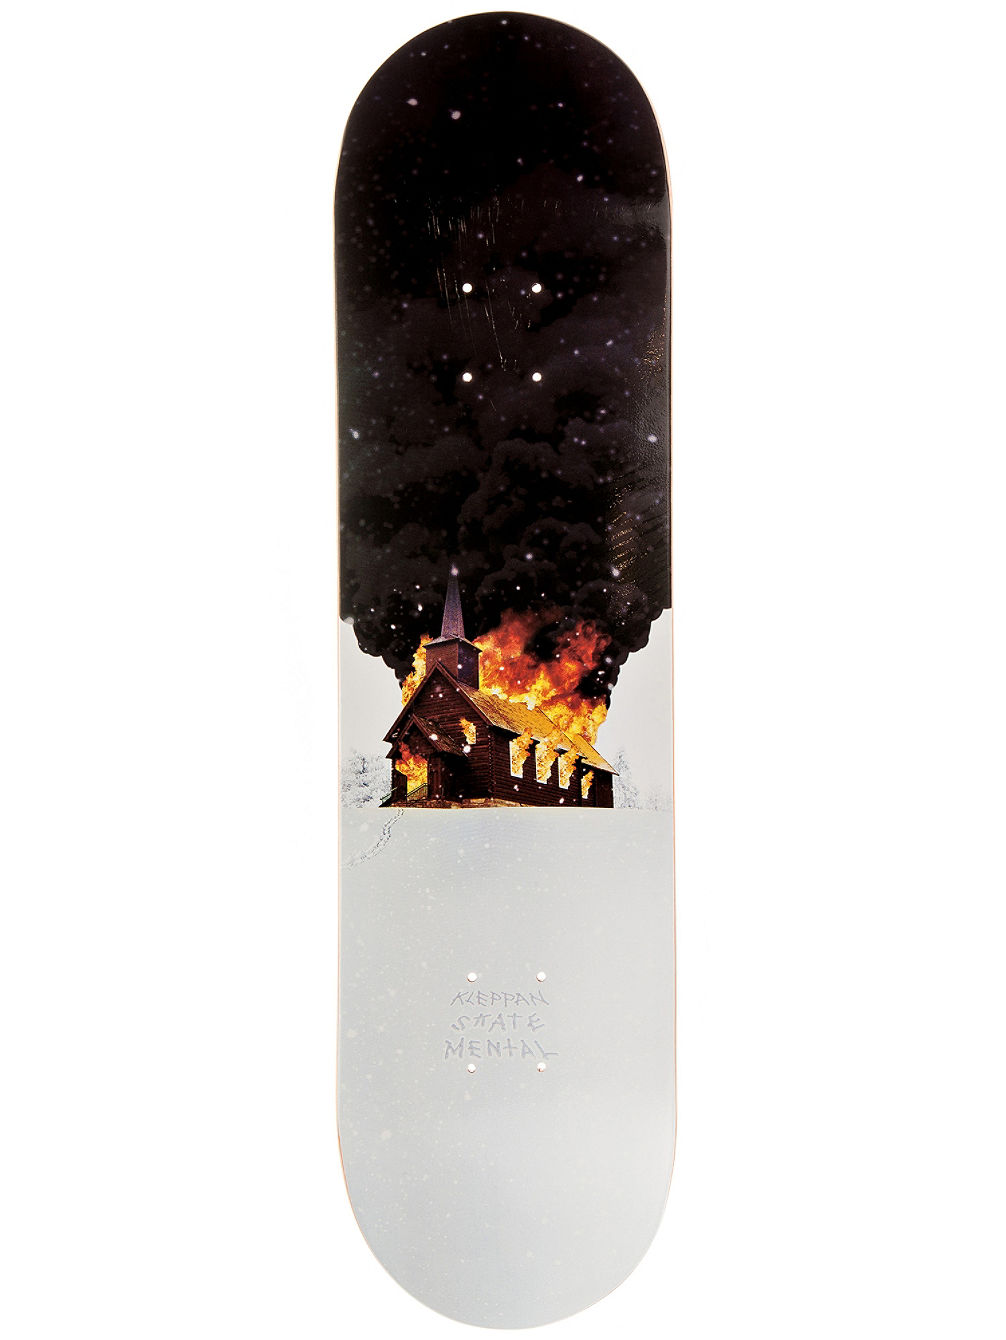 "Kleppan Church 8.0"" Skate Deck"